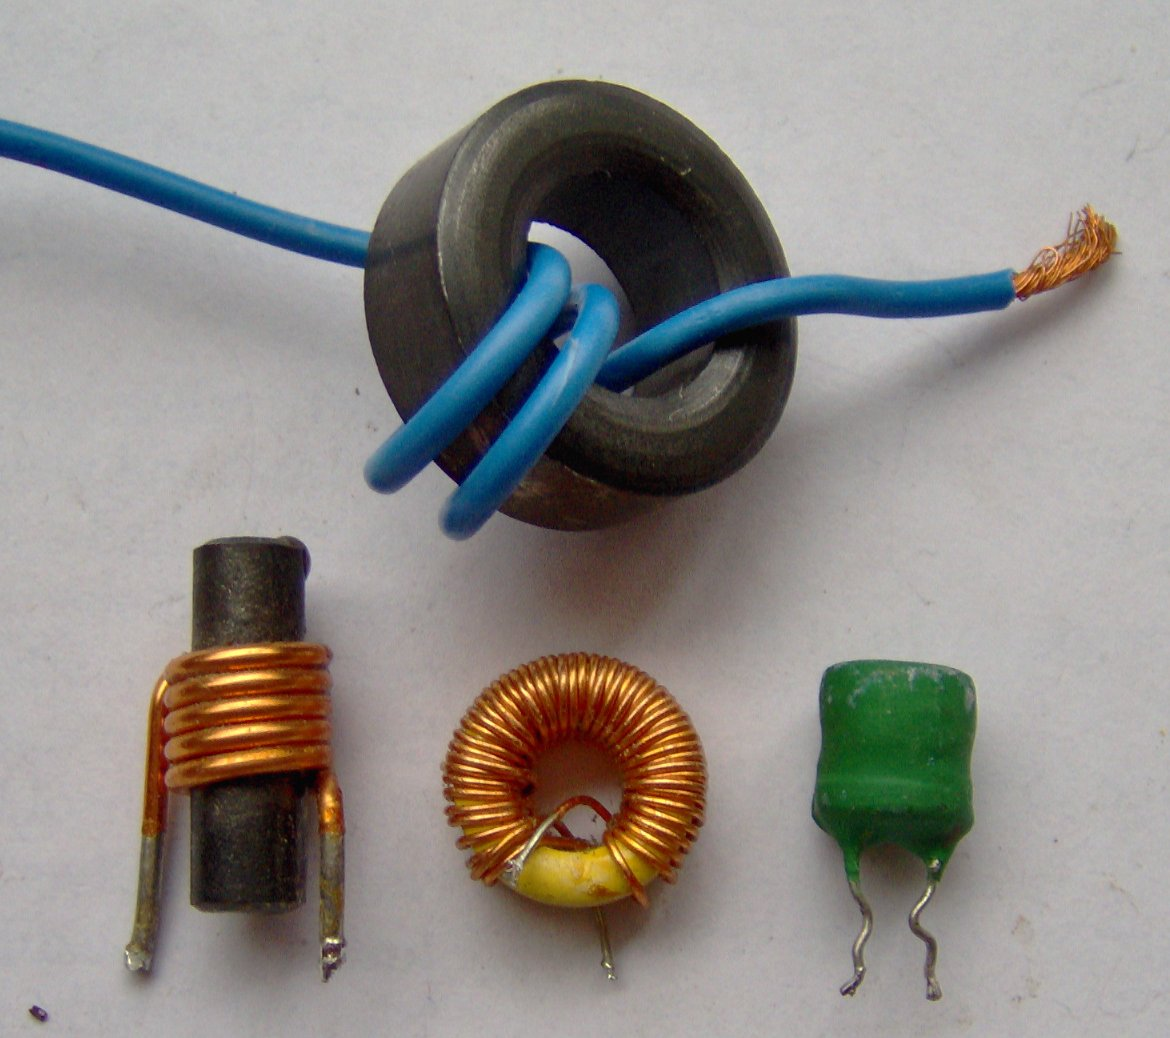 phone plug wiring diagram for 220 volt generator inductor - wikipedia, la enciclopedia libre